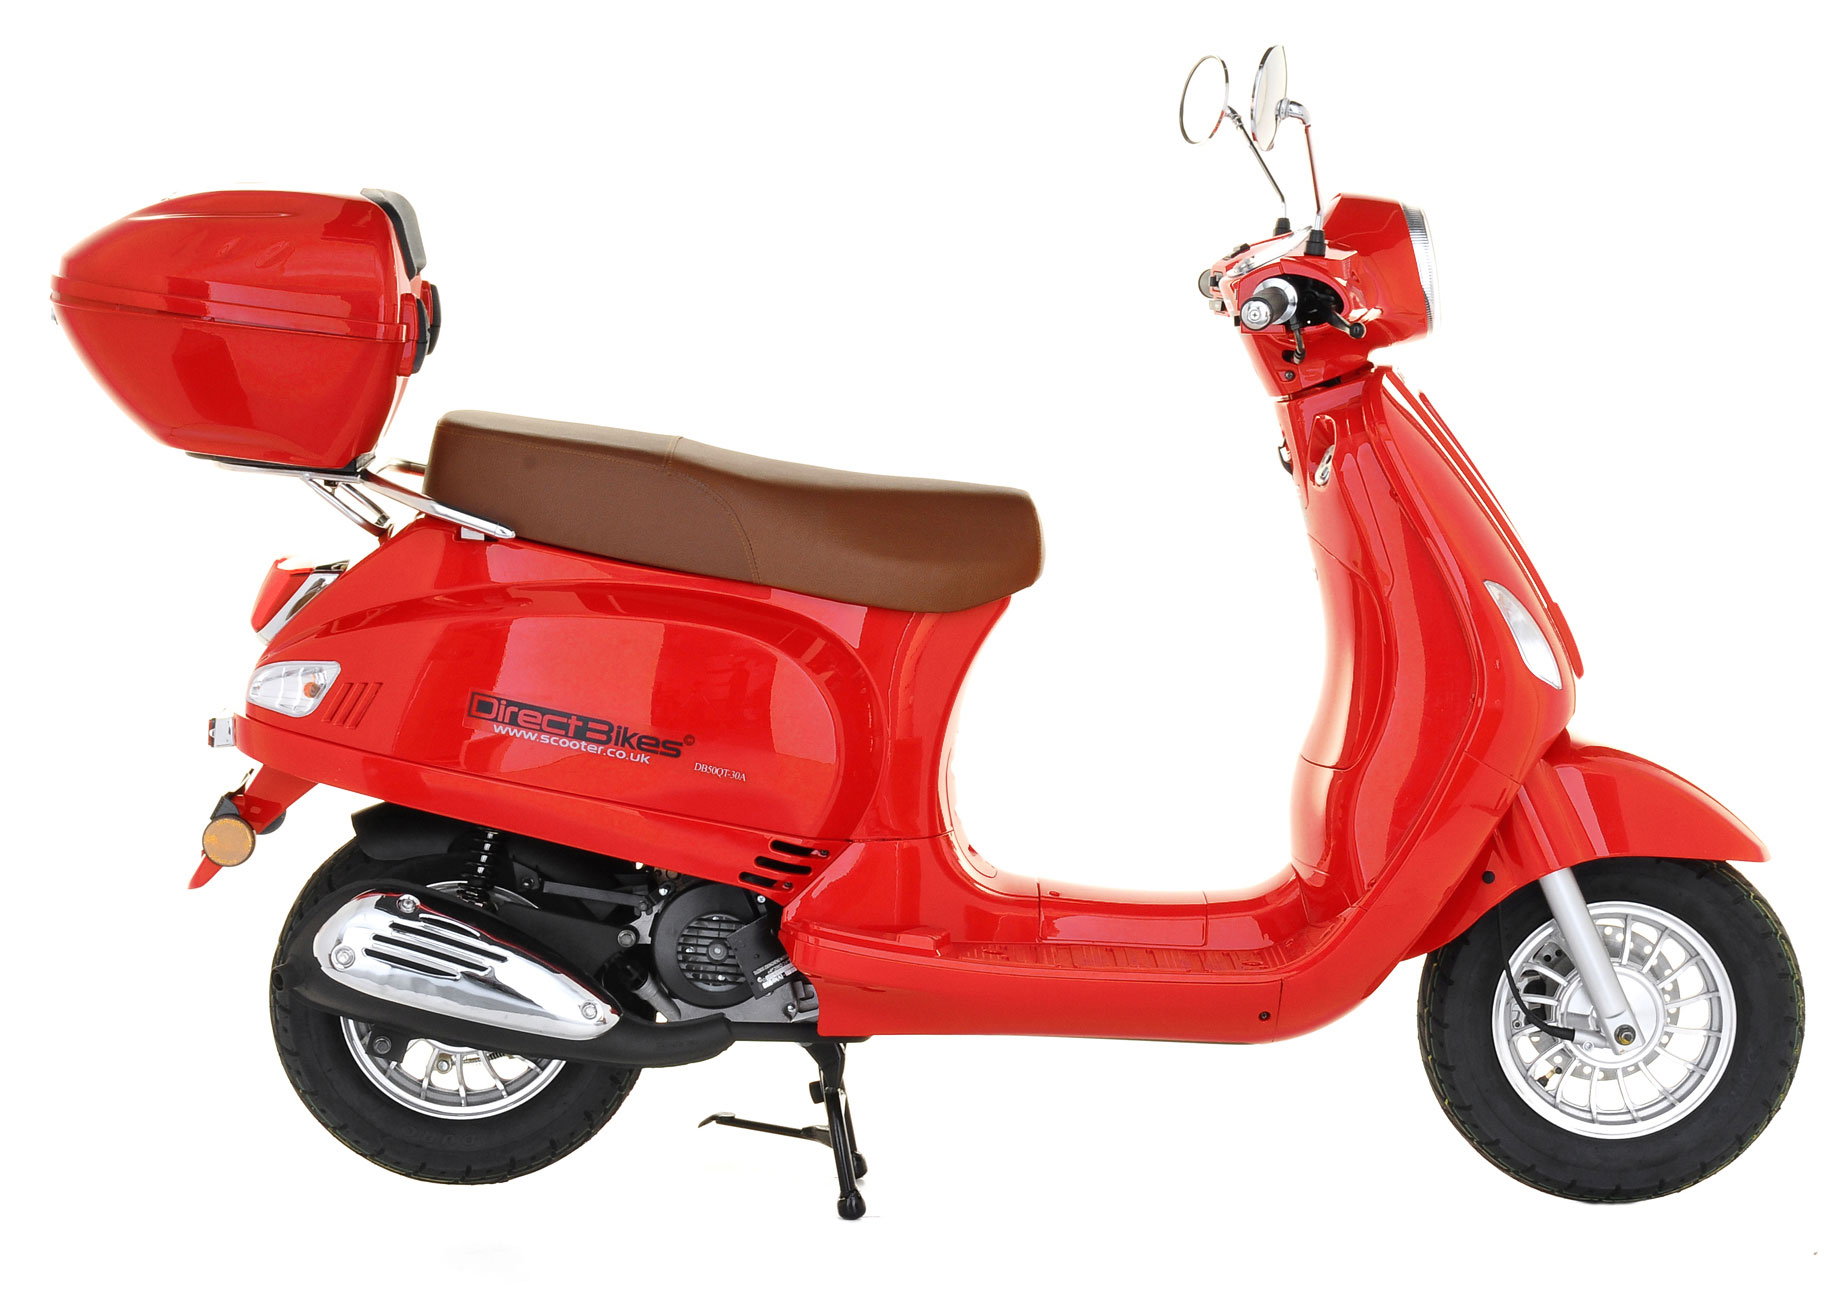 Petrol Scooter 125cc Milan Side